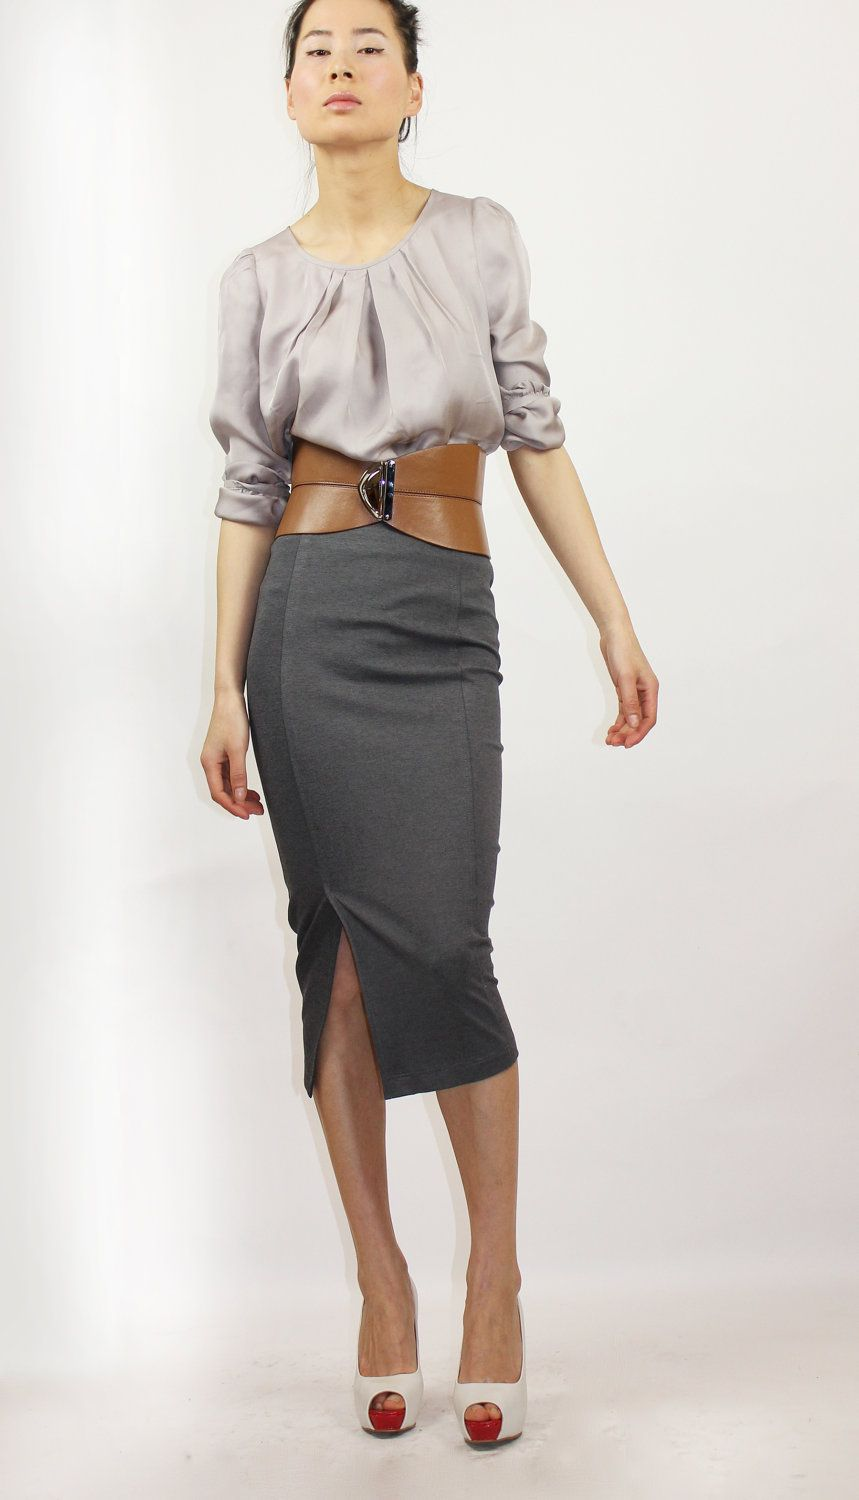 Grey pencil skirt $84 ellalai.etsy.com (love the whole outfit ...